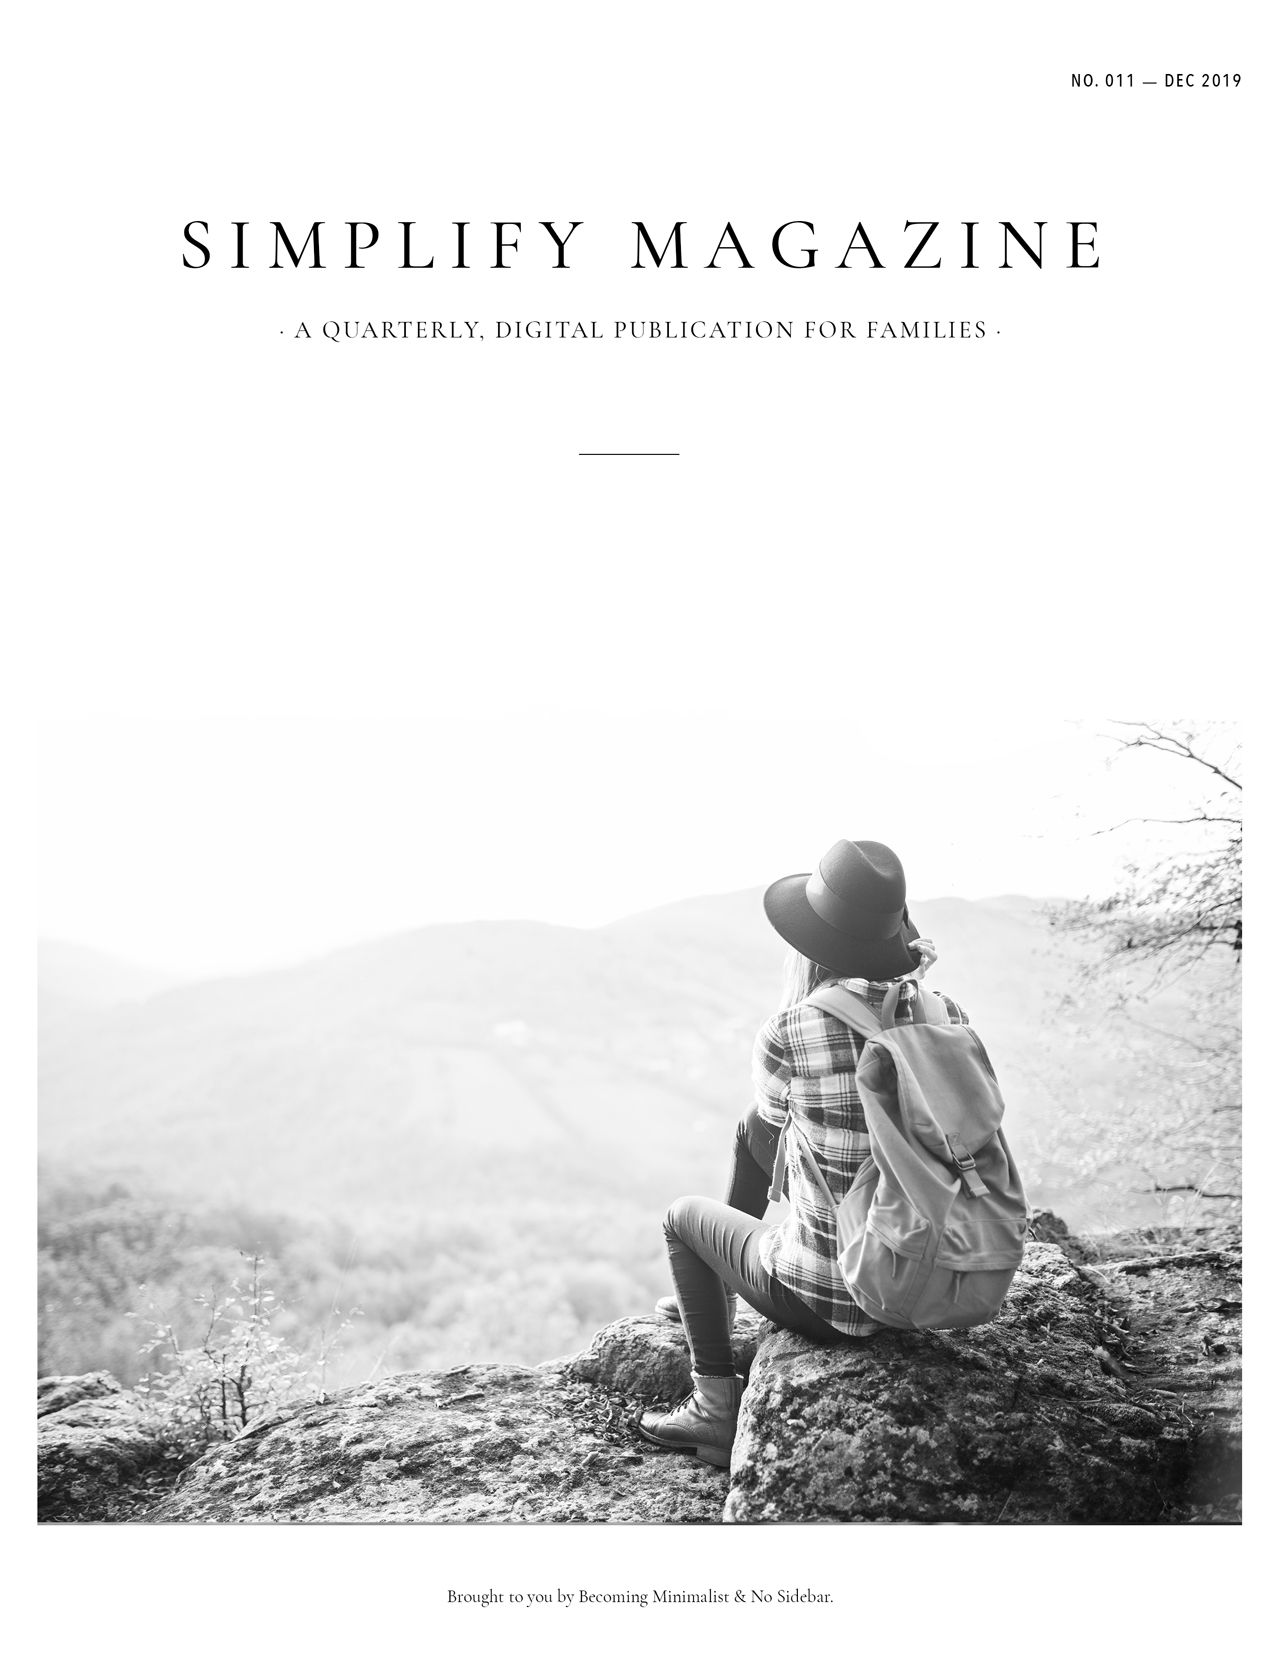 Simplify Magazine Issue #011